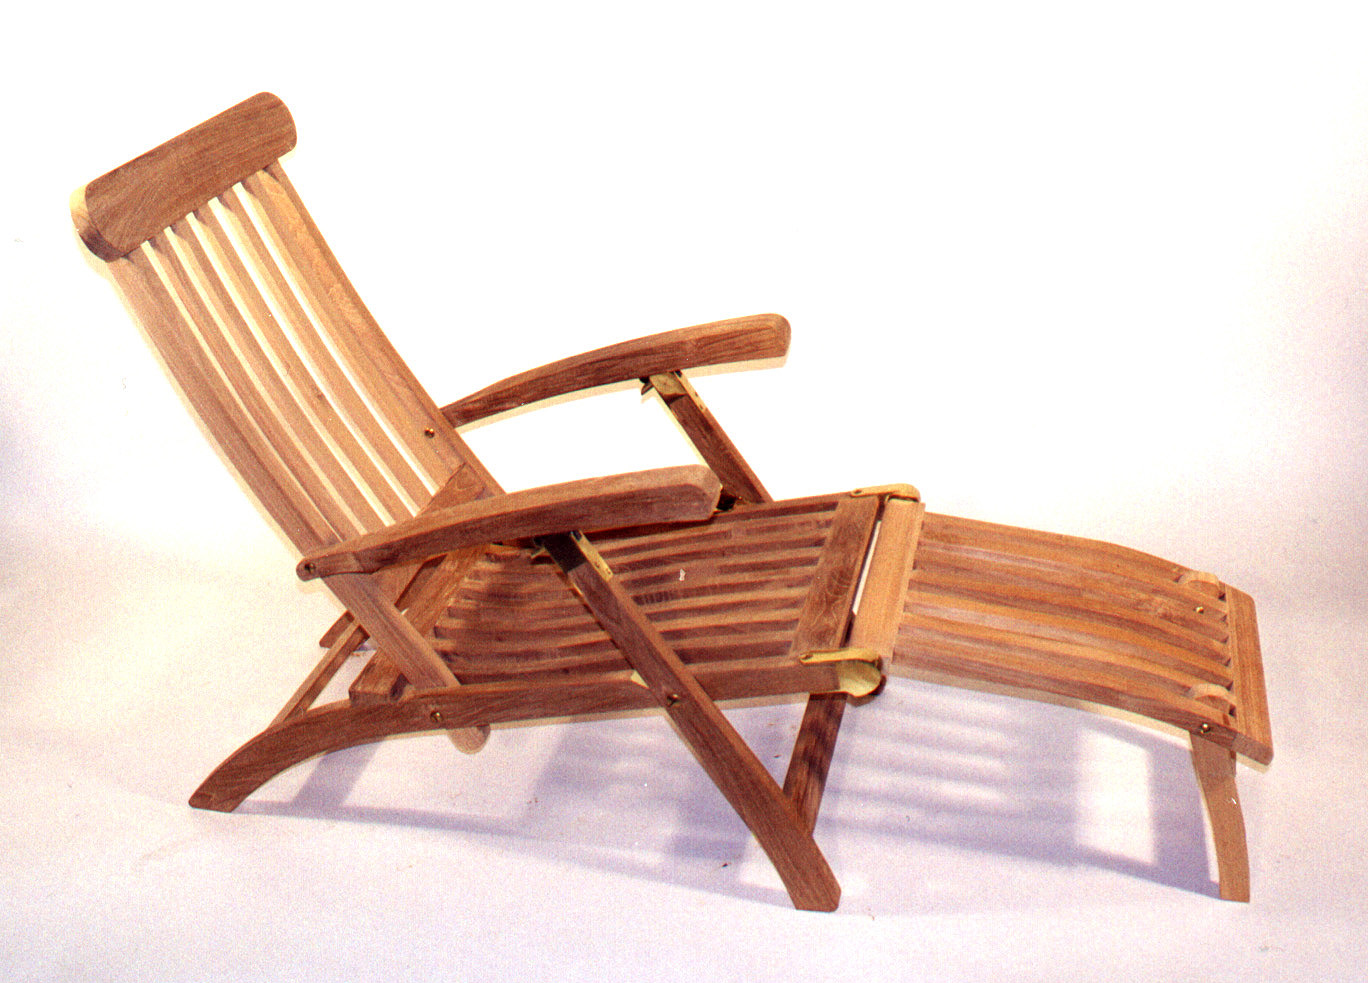 Steamer Chair. Solid Teak Garden Furniture, Fireplace Mantels - Steamer Chair. Solid Teak Garden Furniture From The Wood Carver Inc